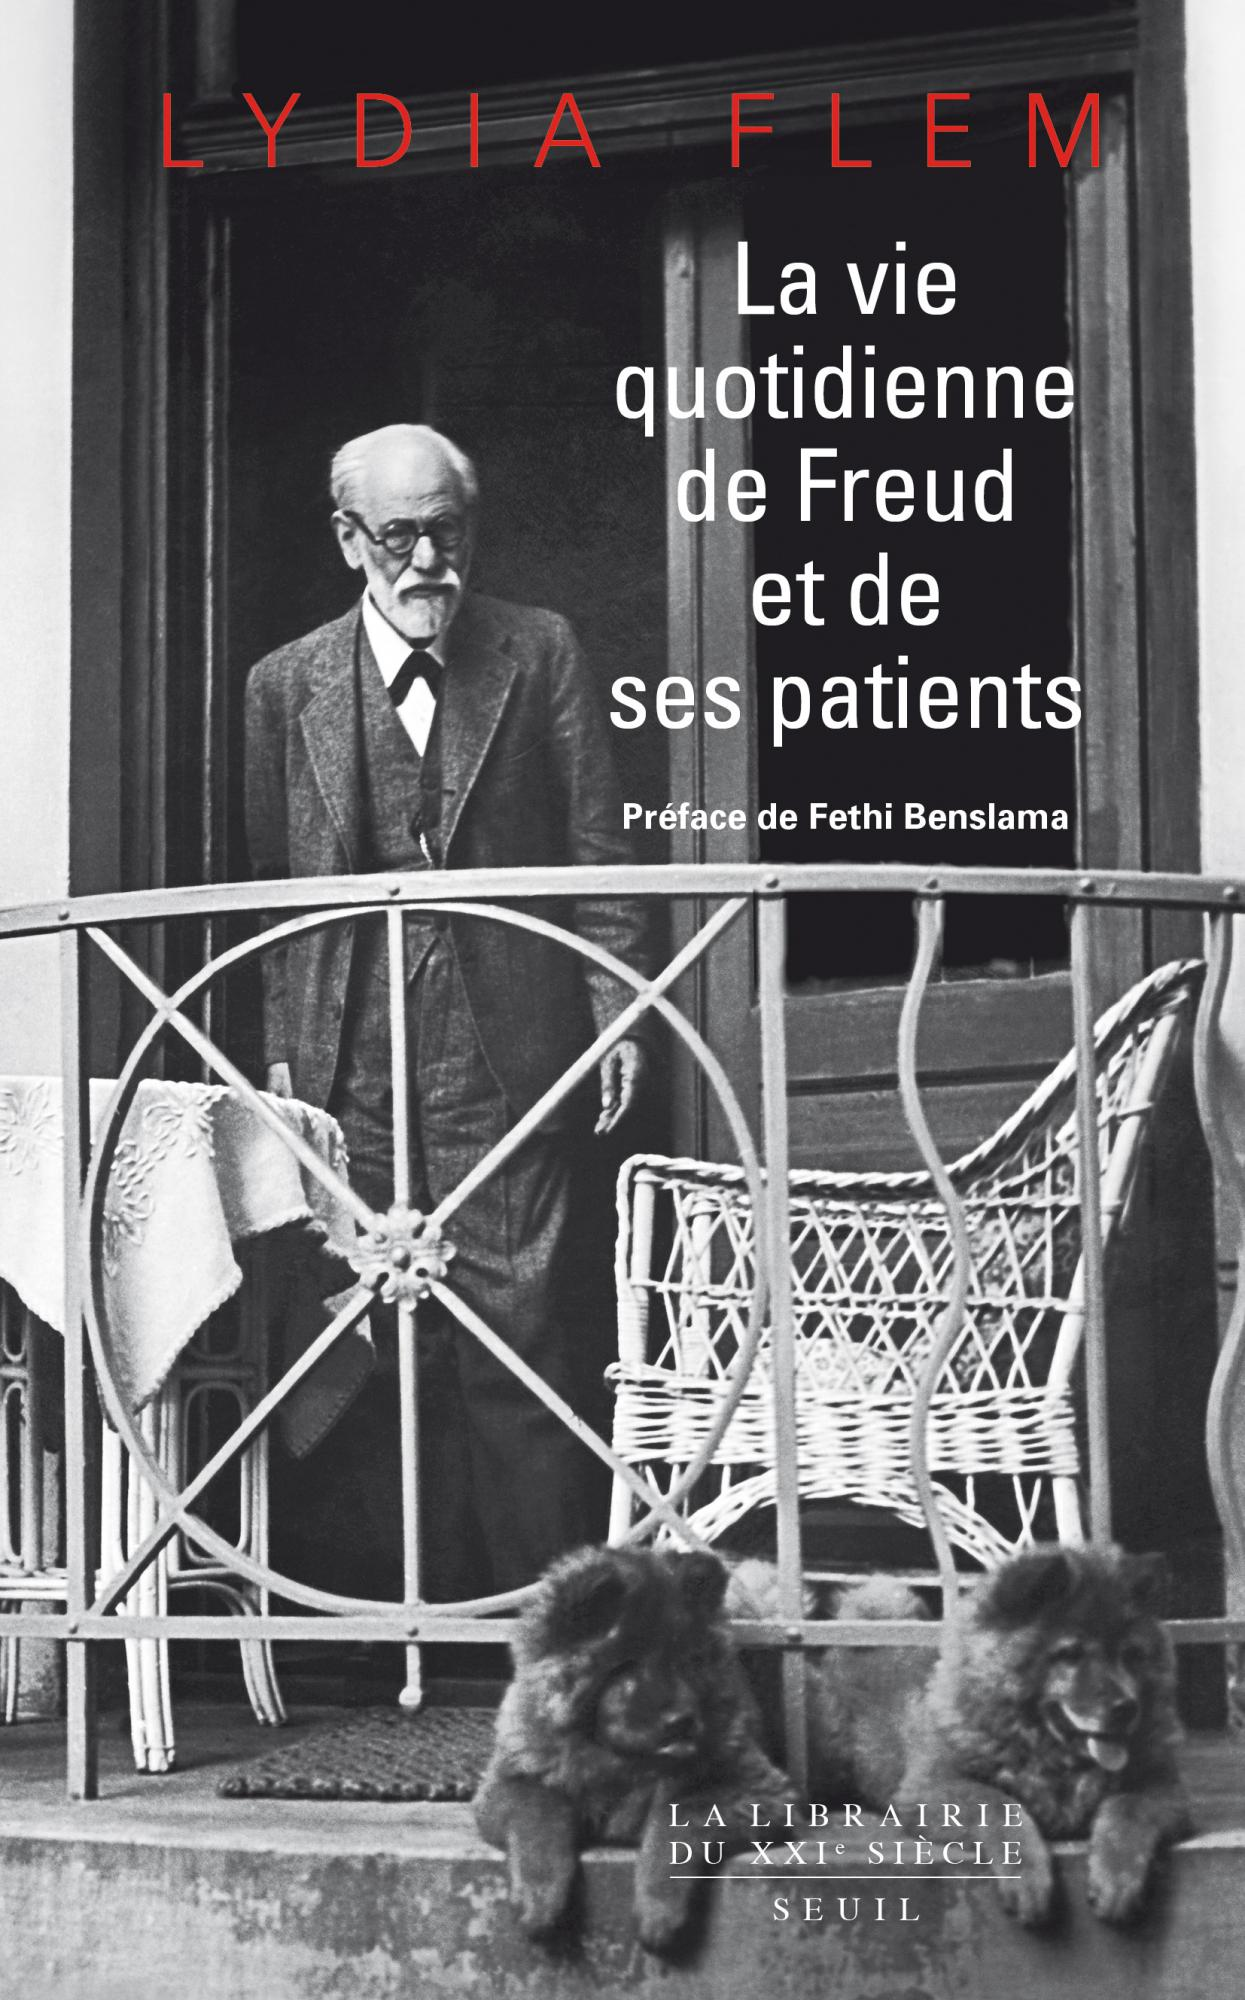 L. Flem, La vie quotidienne de Freud et de ses patients (rééd.)